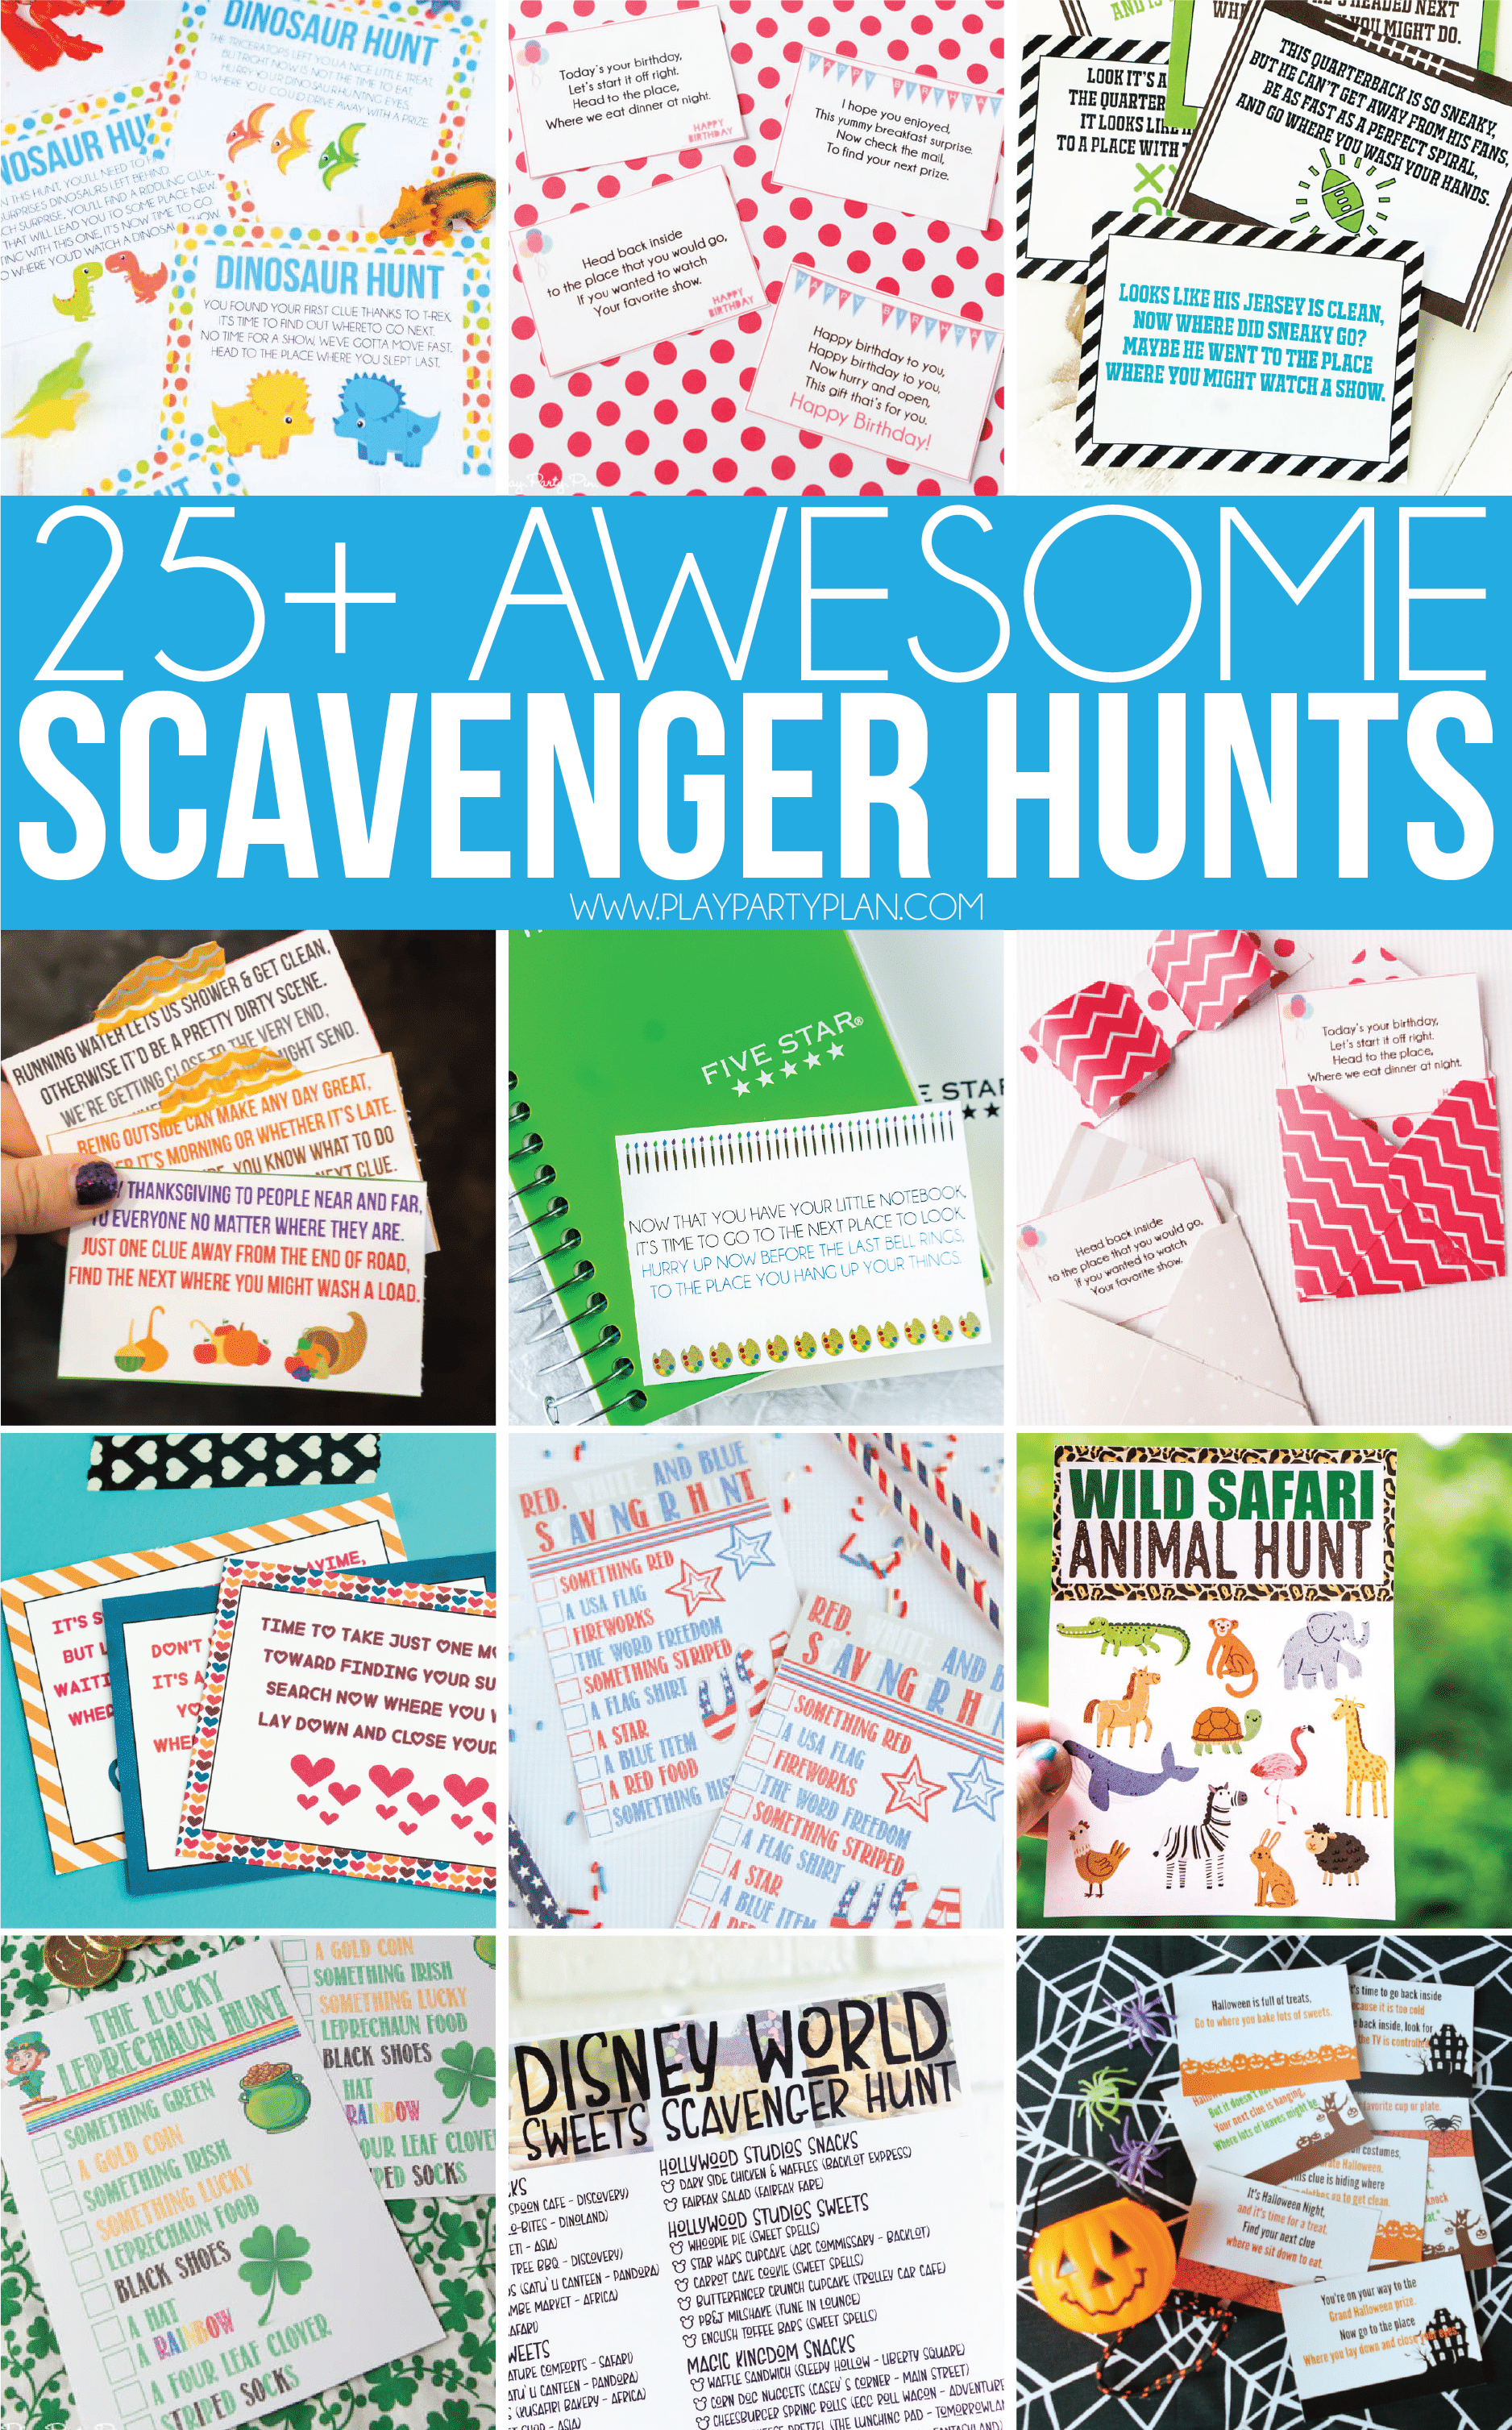 Awesome Scavenger Hunt Ideas For All Ages